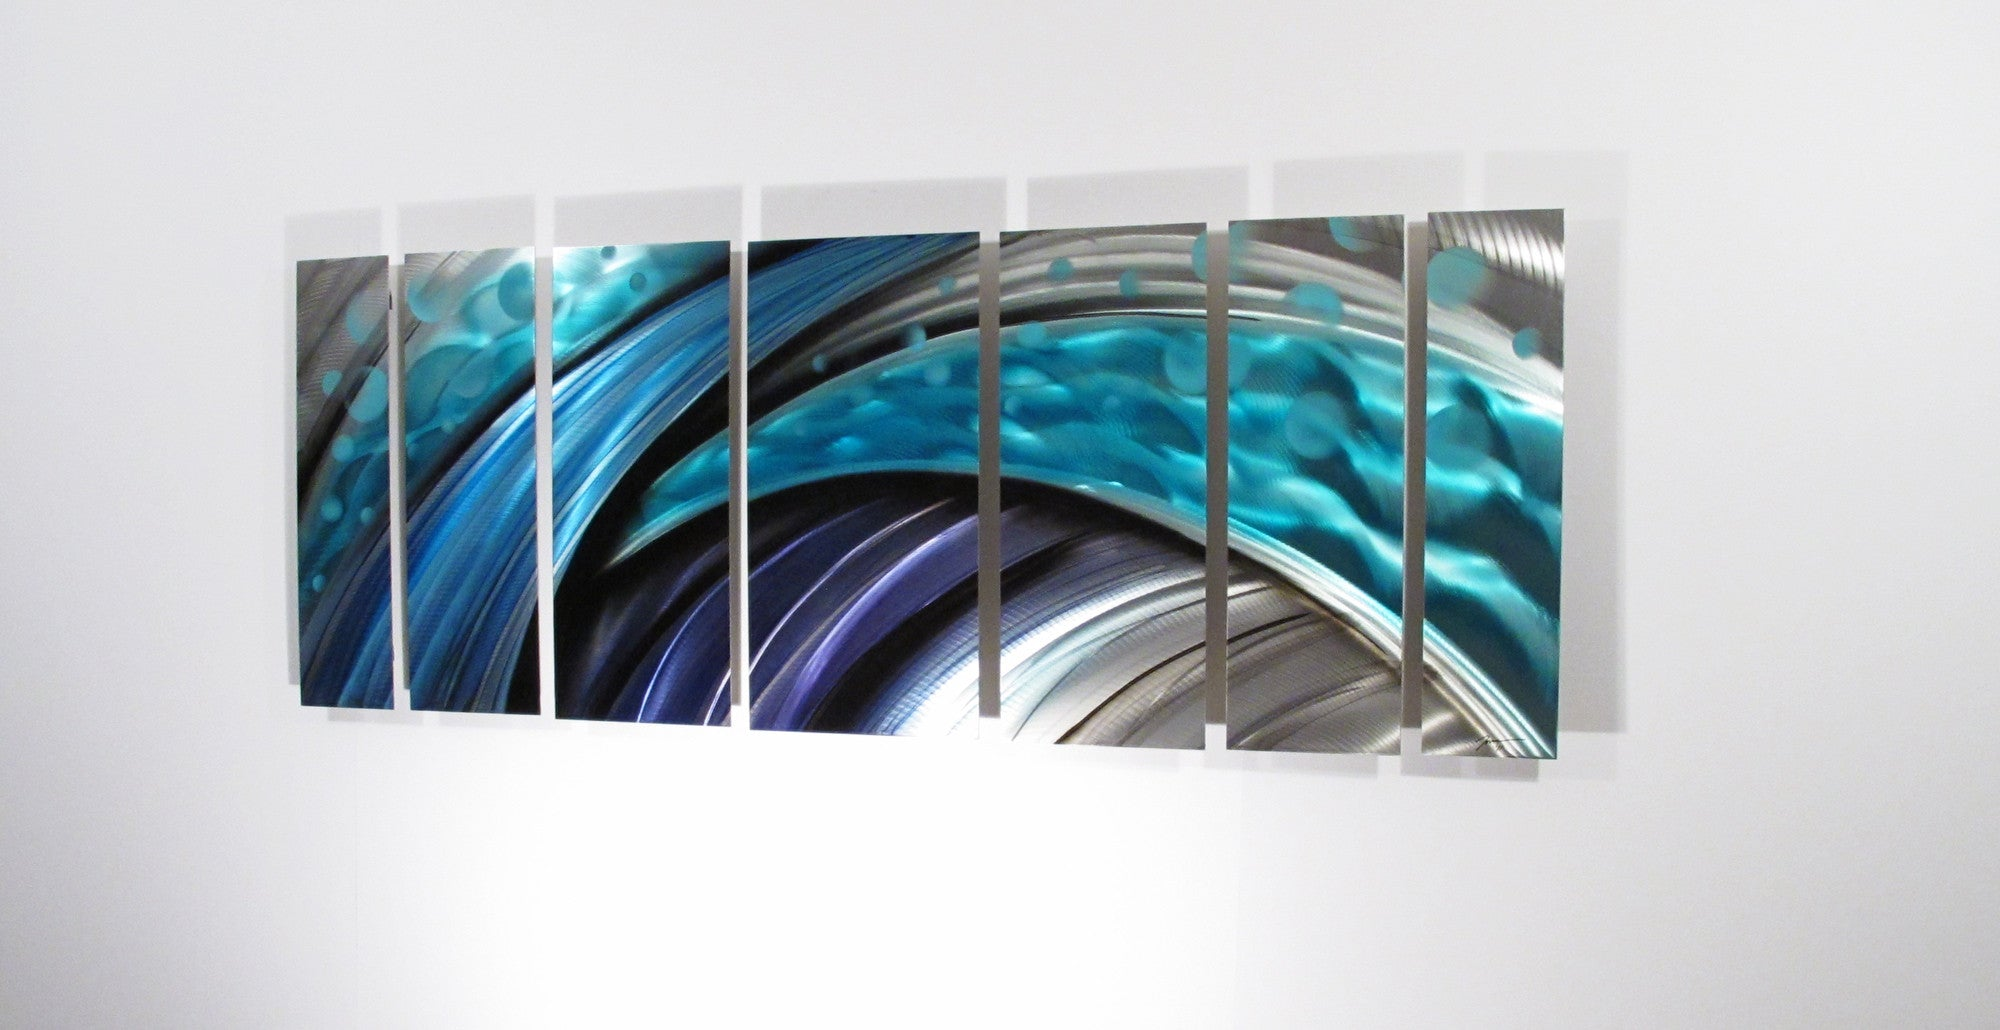 "Blue Metal Wall Art Classy Typhoon"" Large Modern Abstract Metal Wall Art Sculpture Blue  Dv8 Design Ideas"